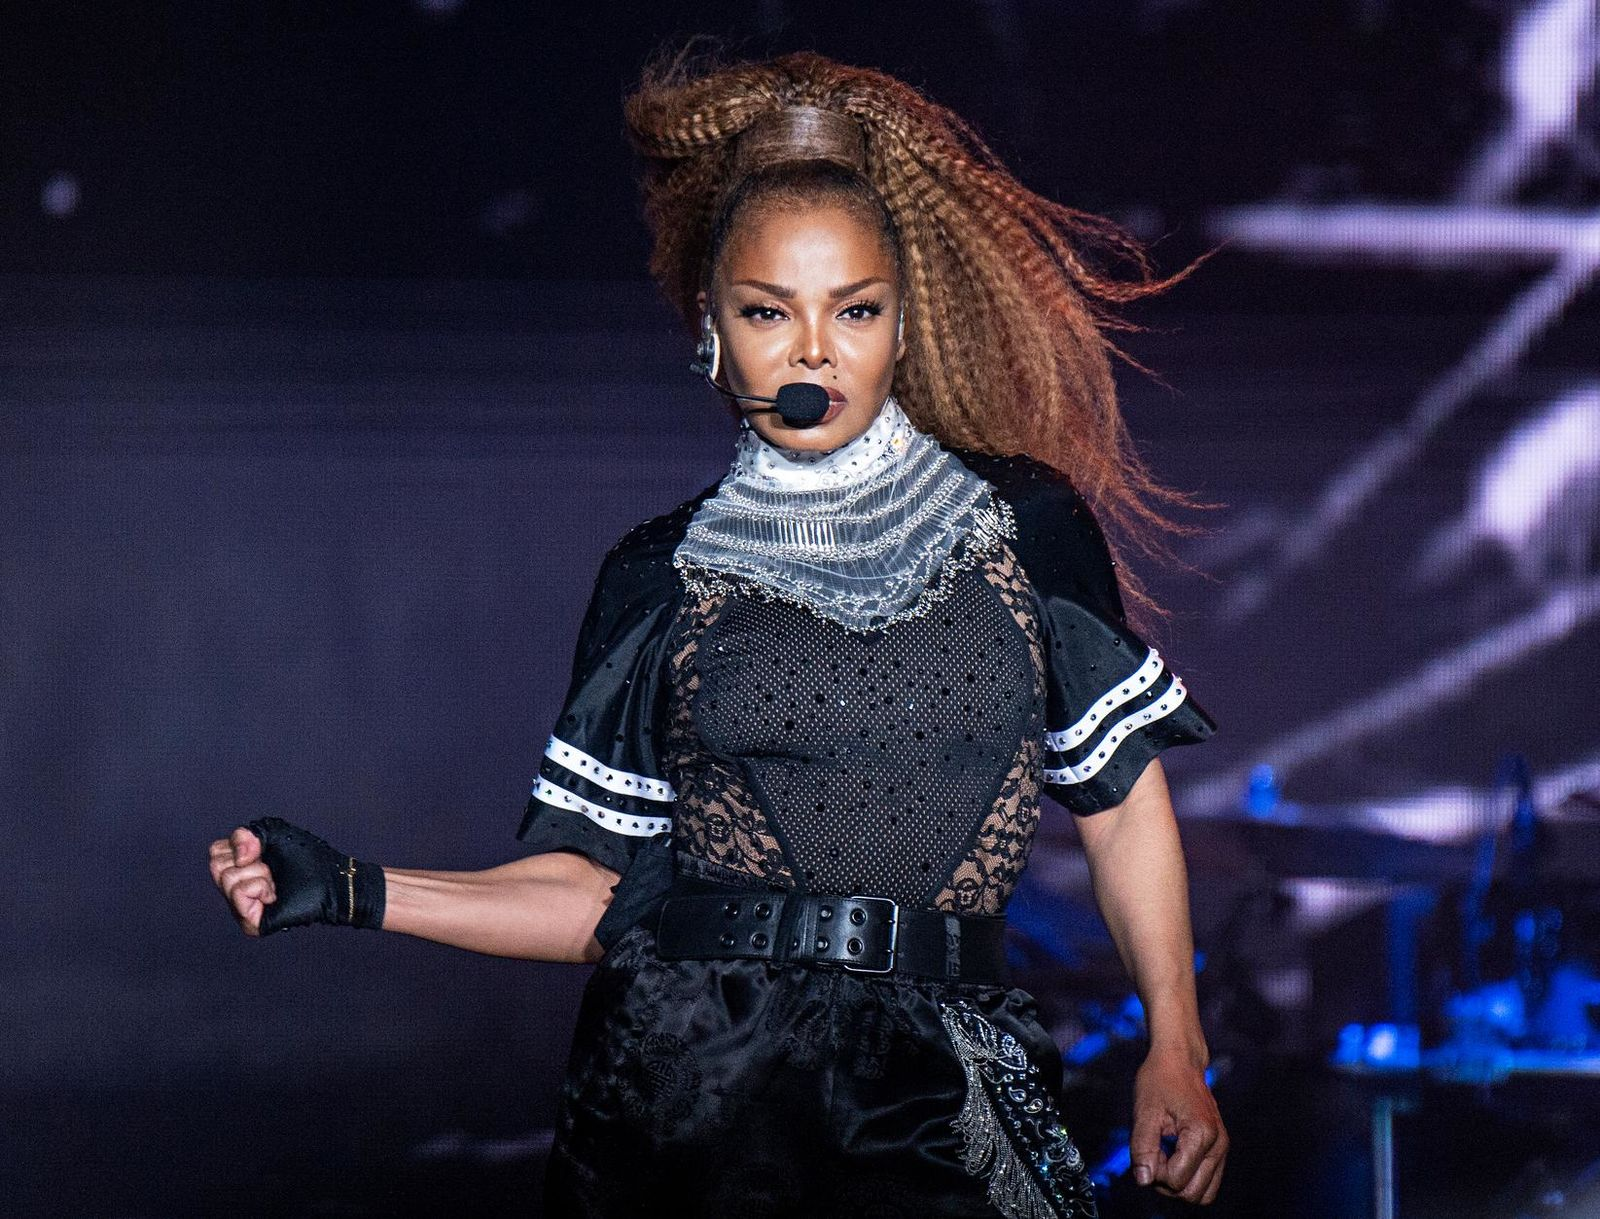 FILE - In this July 8, 2018 file photo, Janet Jackson performs at the 2018 Essence Festival in New Orleans. (Photo by Amy Harris/Invision/AP, File)